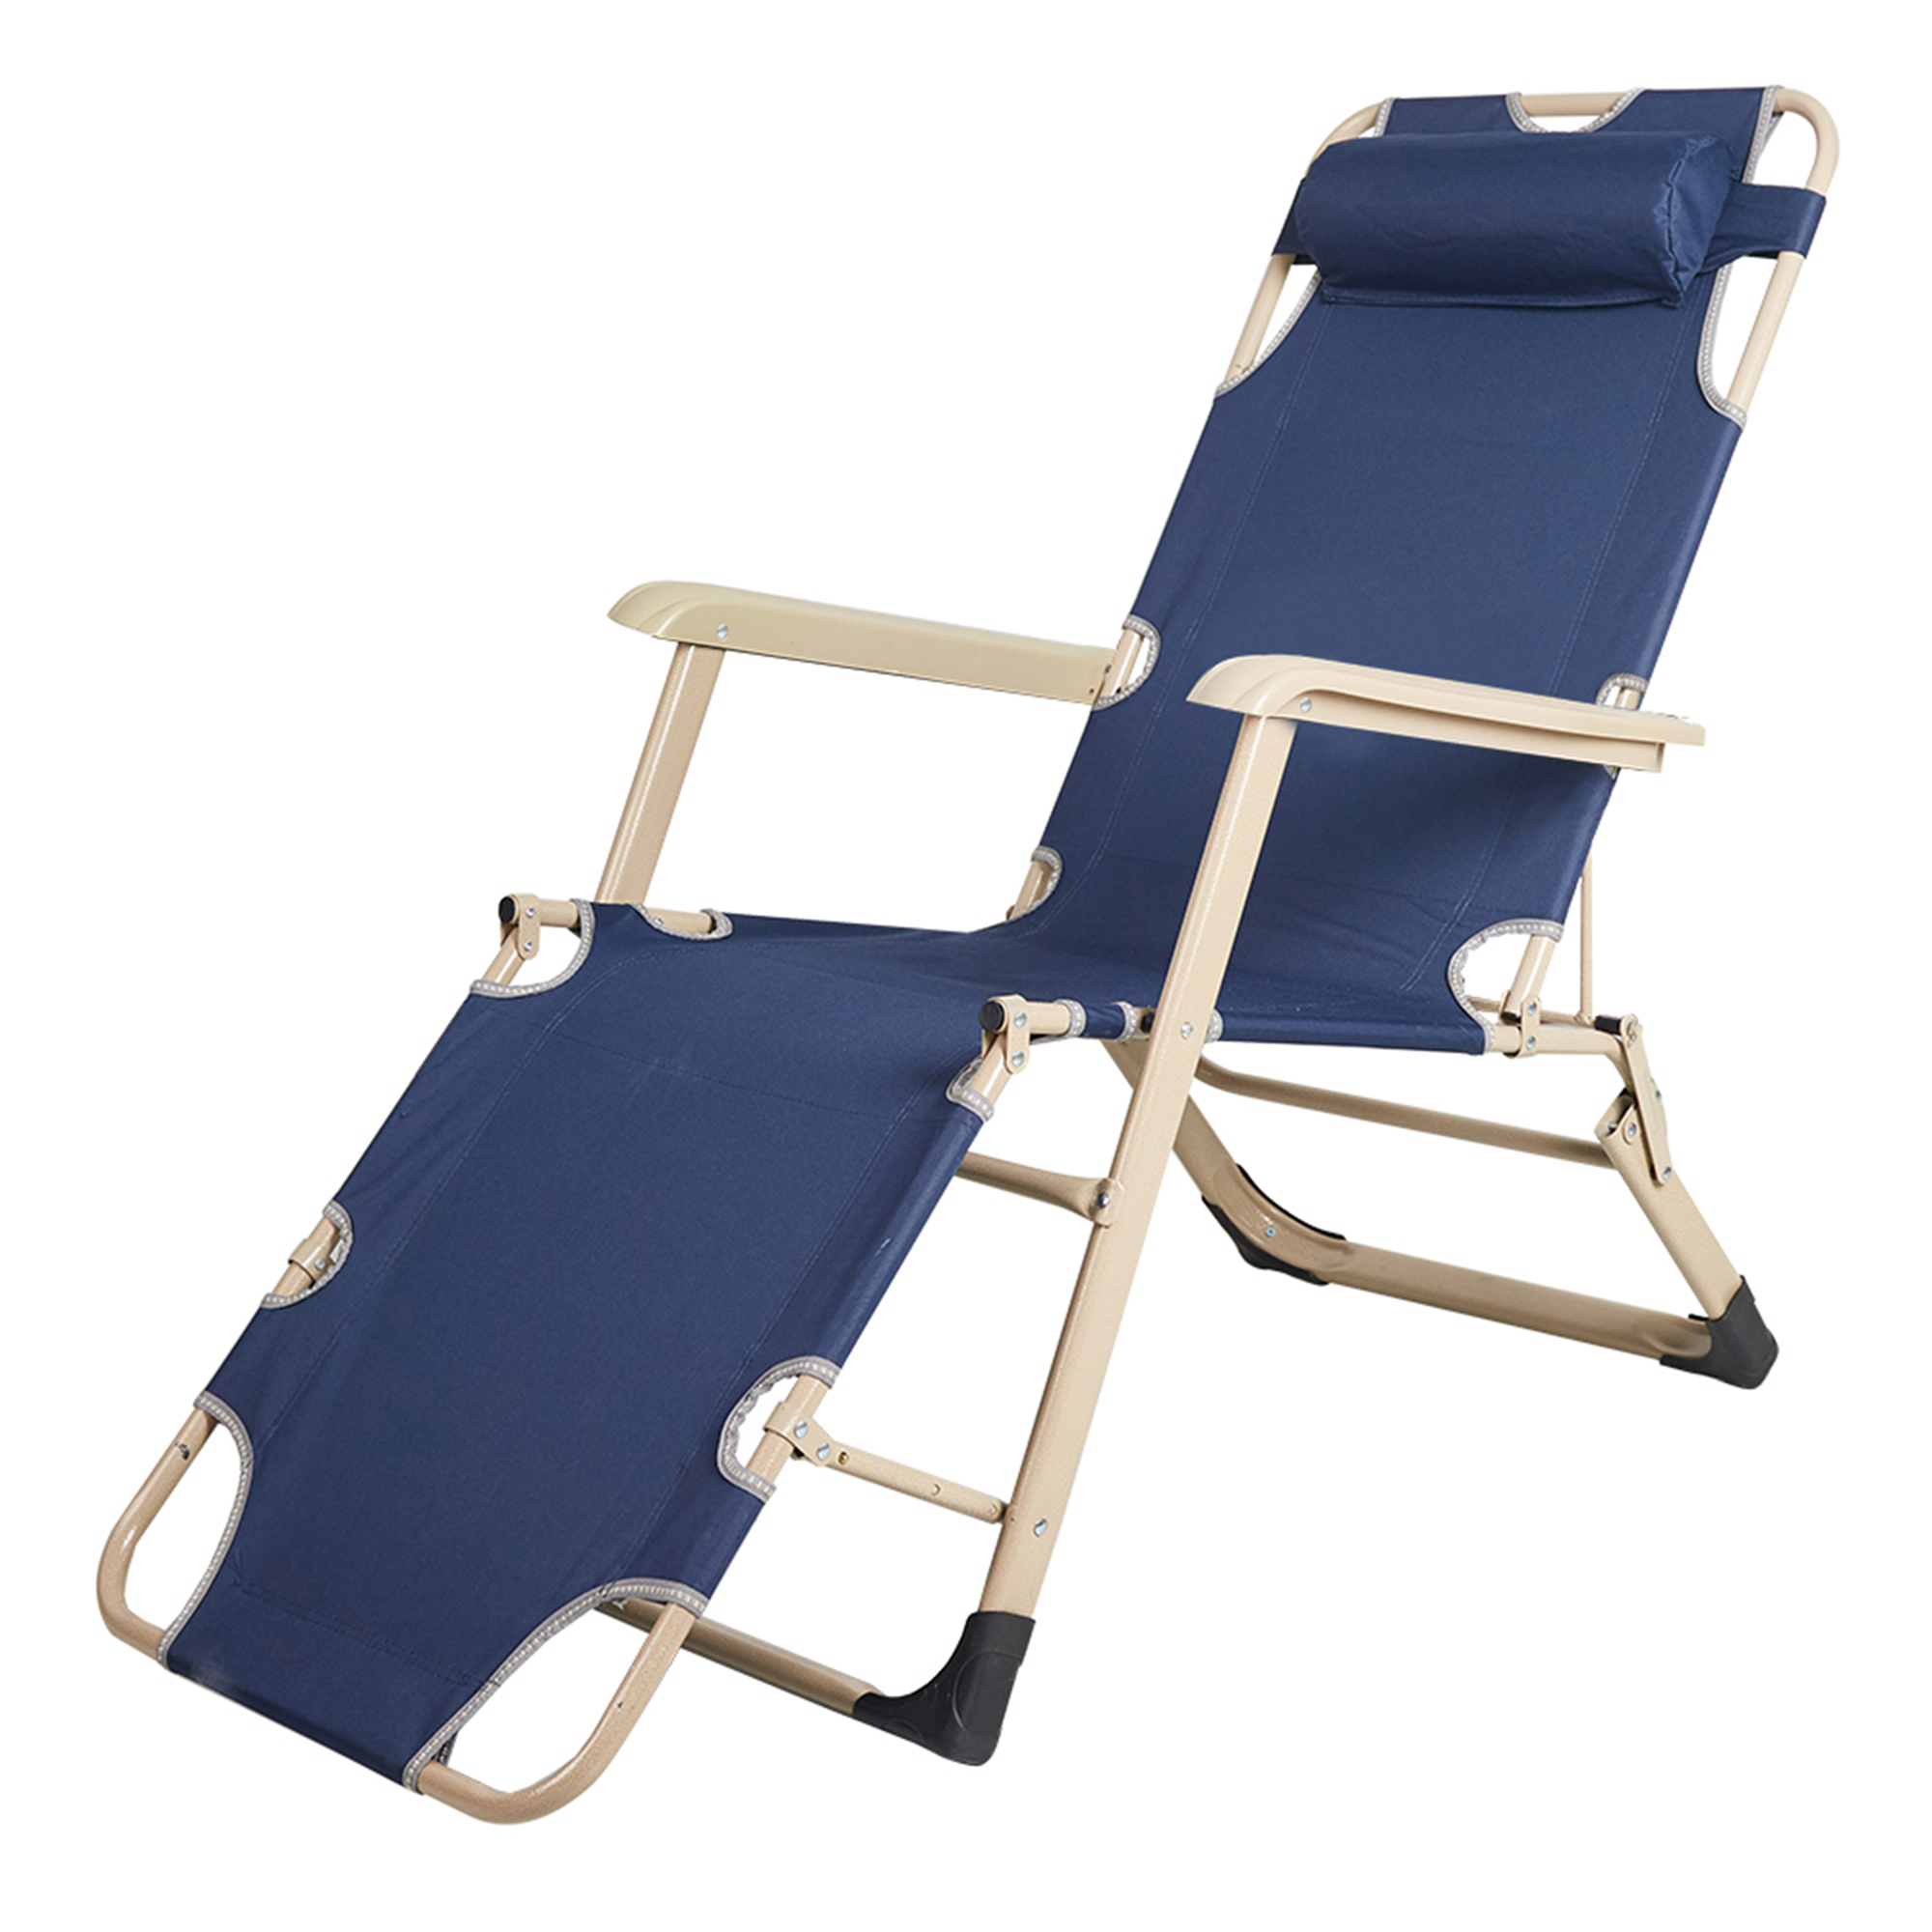 outdoor folding lounge chairs recliner for elderly karmas product reclining armchair patio beach chaise chair with pillow large walmart com